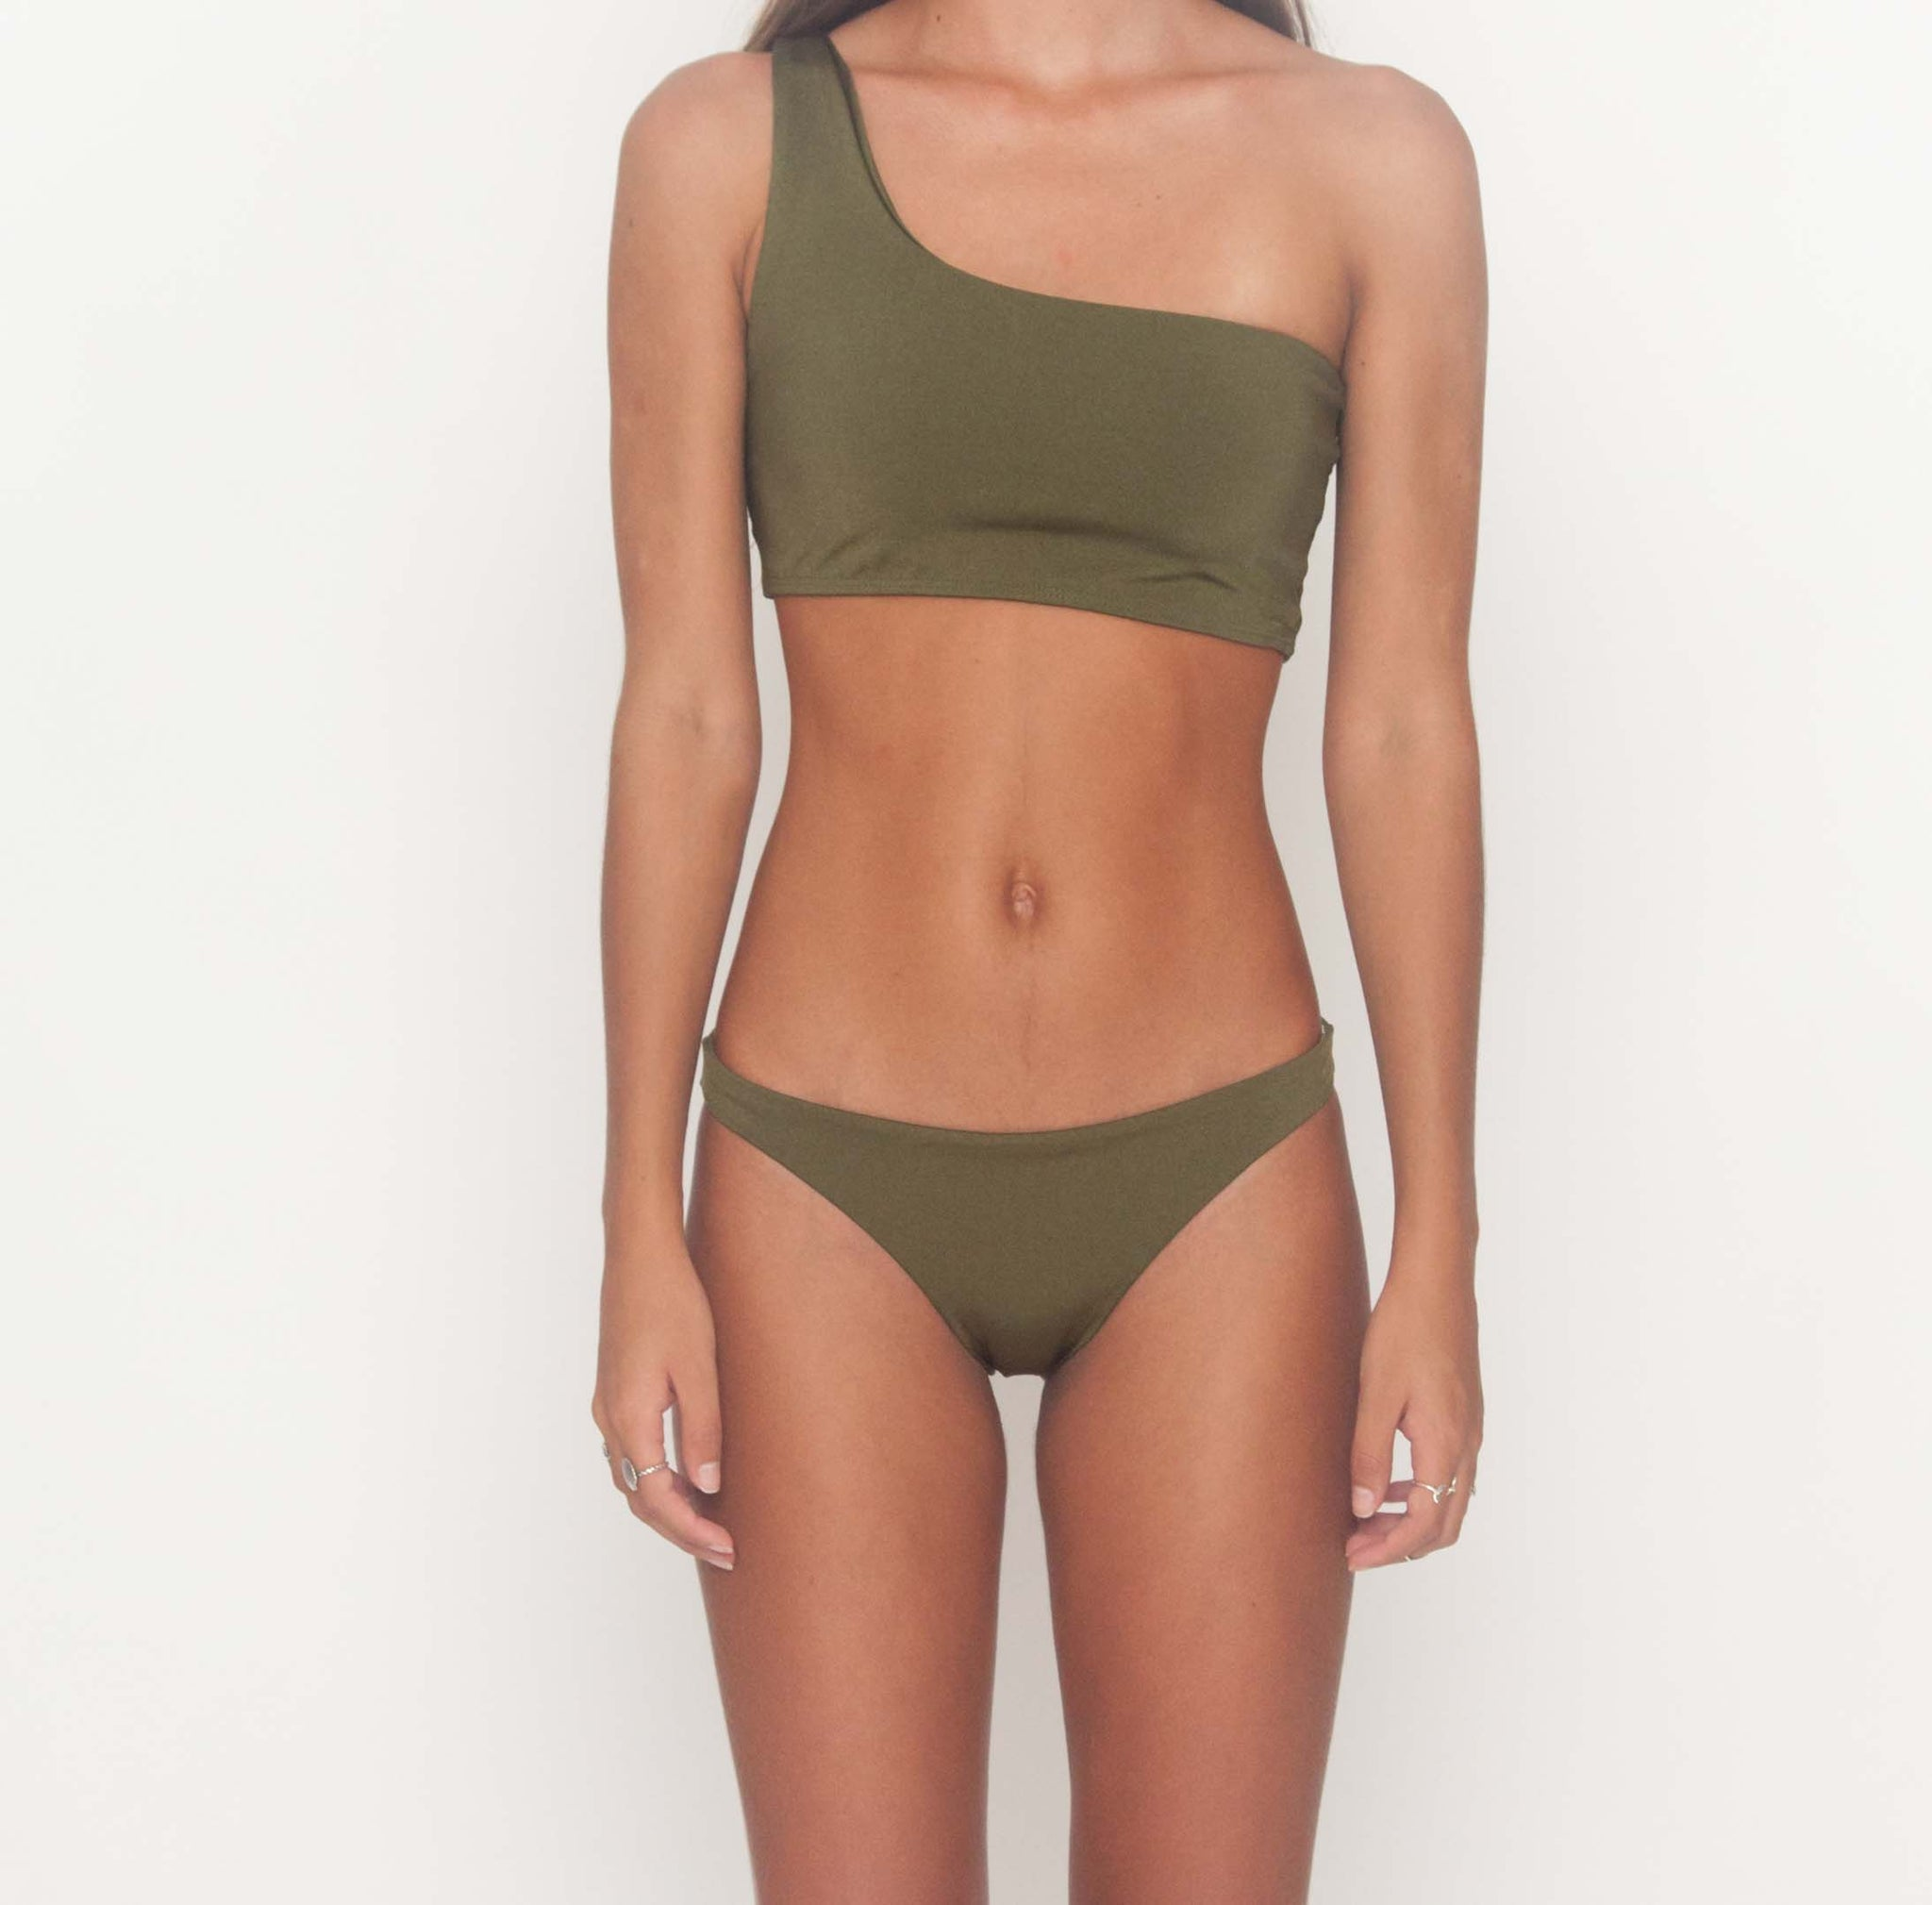 Ki & Co - One Shoulder Bikini